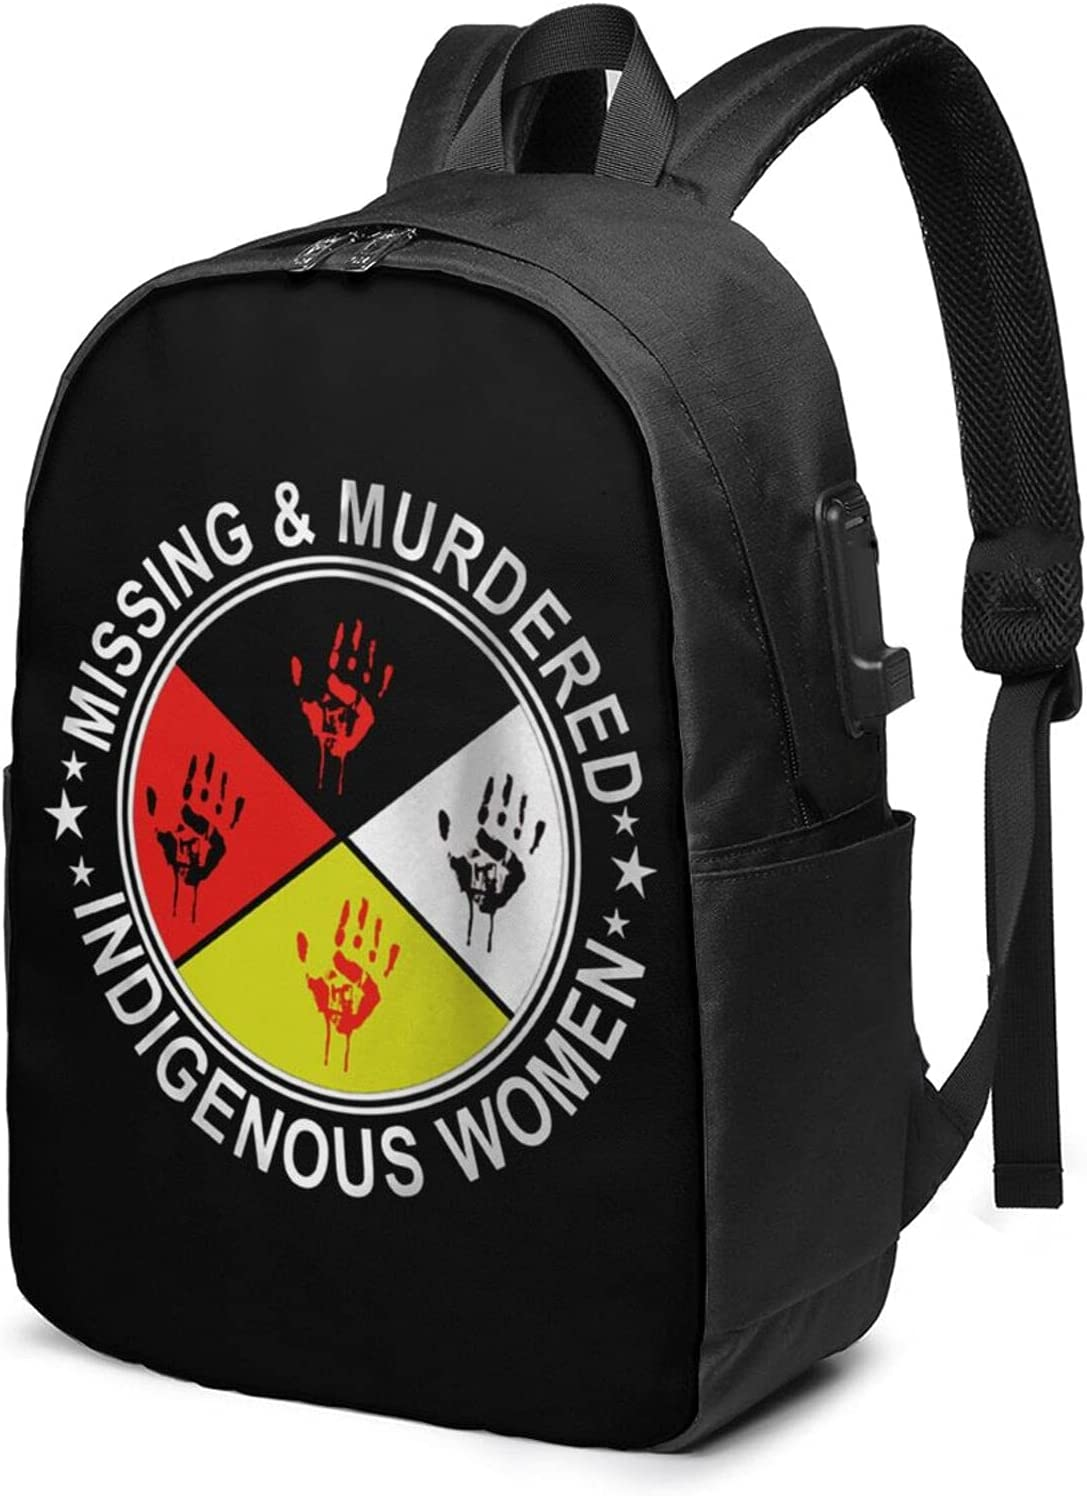 Missing Fees free!! Murdered Indigenous Women Laptop Usb Backpack With Charg discount